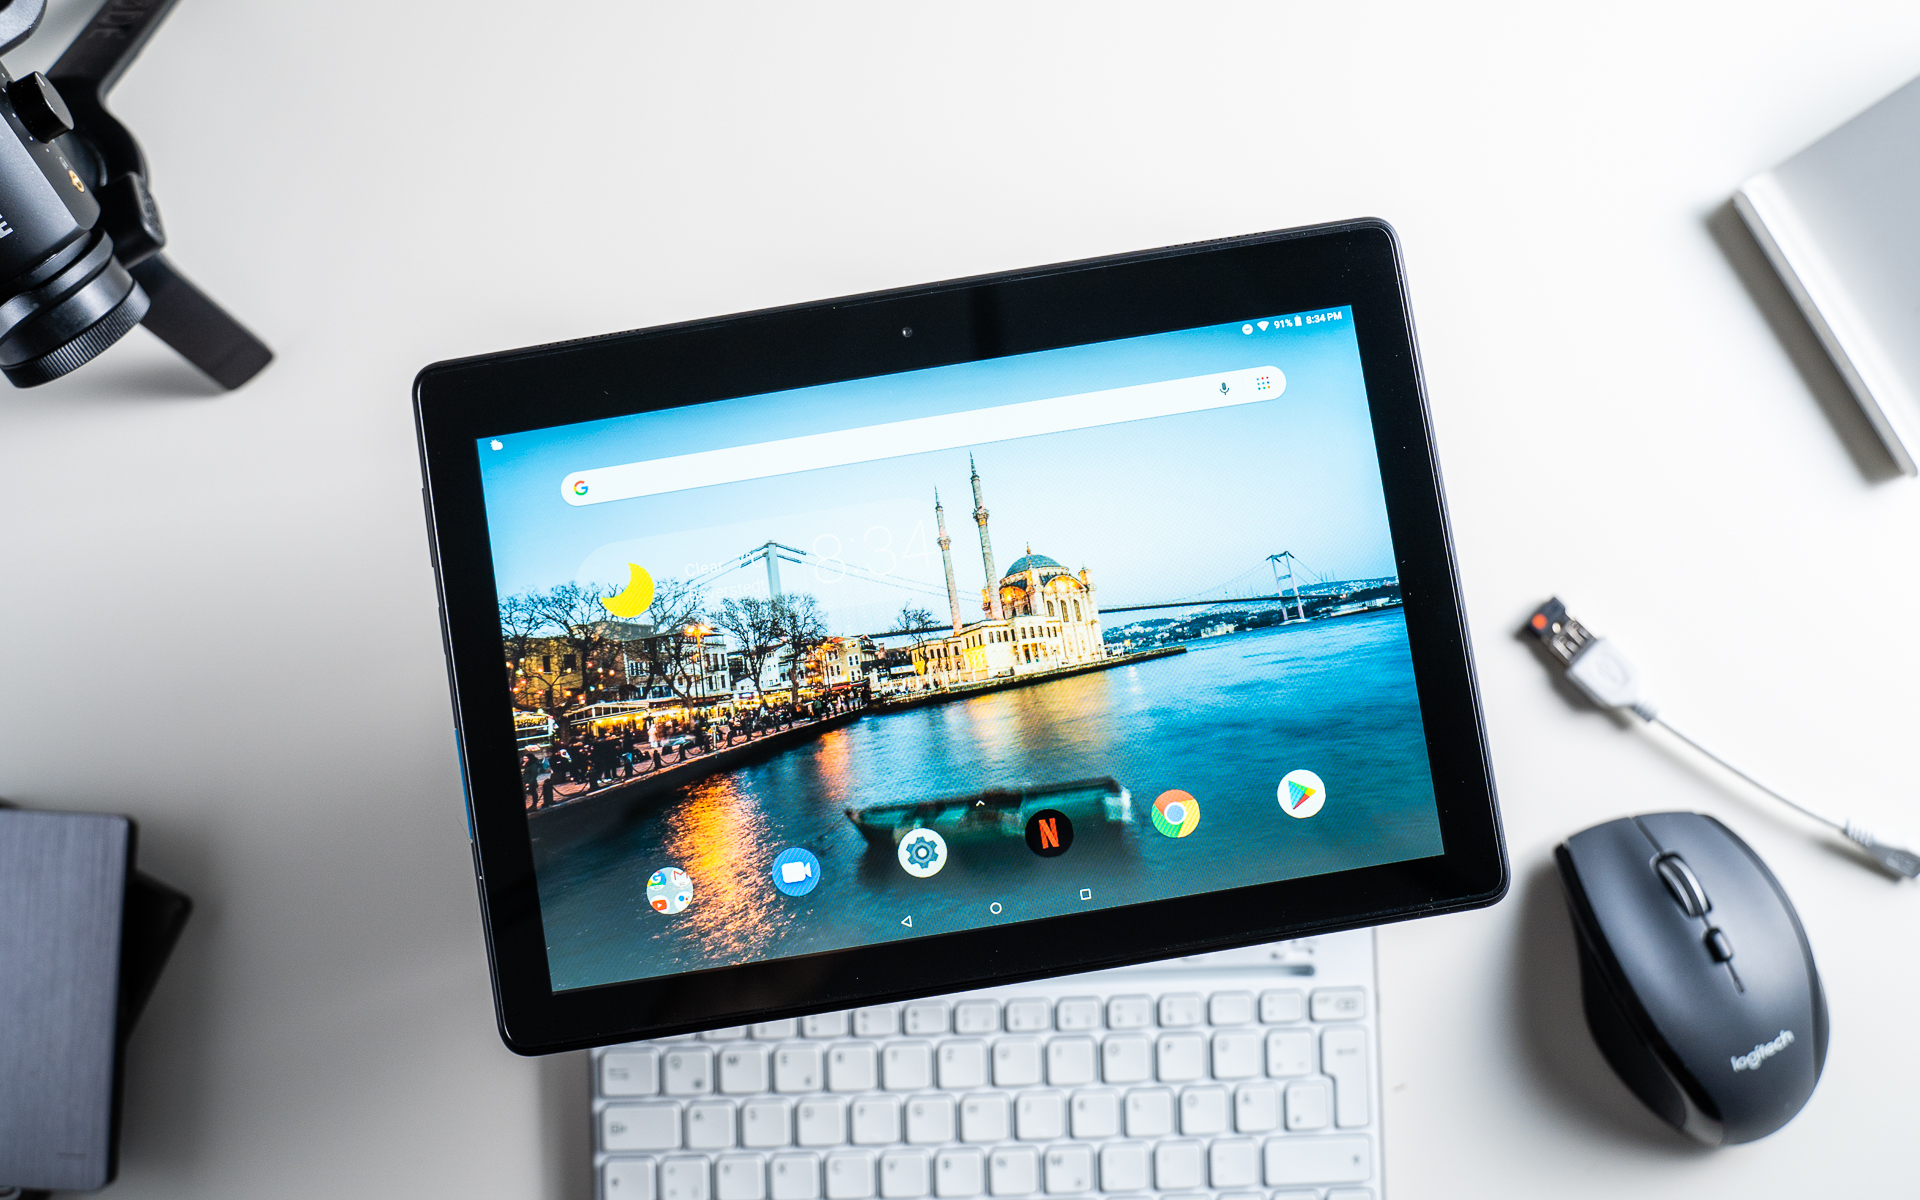 official photos 421a7 d7c45 Lenovo Tab E10 Review: How Usable Is This Cheap 10-Inch Tablet ...